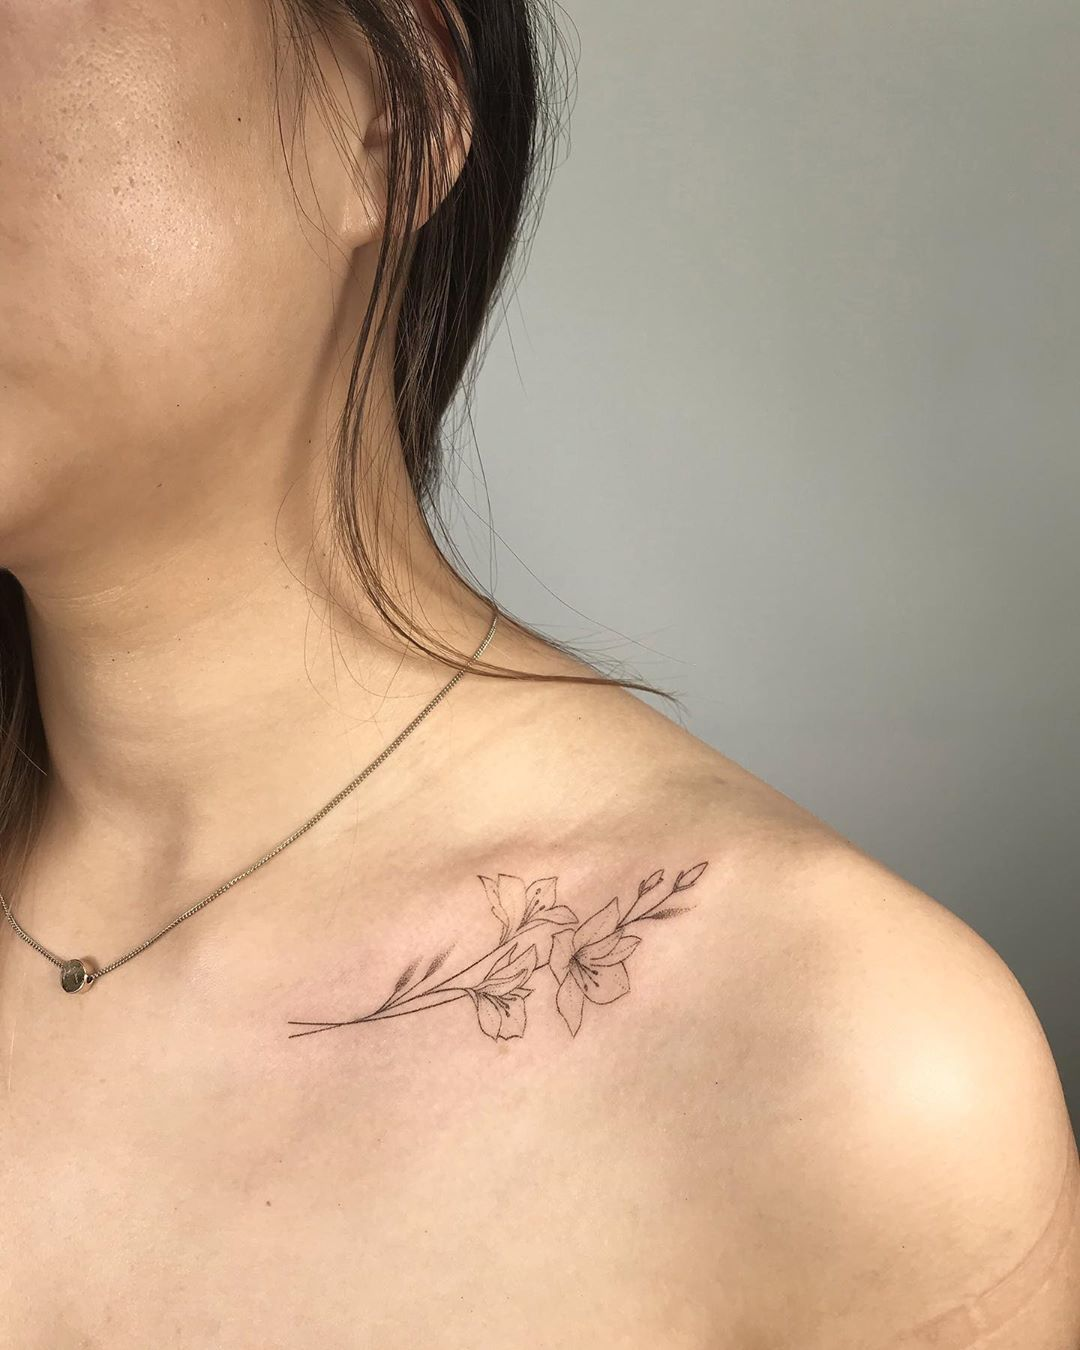 Pin By Sara Donnelly On S P Ink Small Tattoos Tattoos Lily Tattoo